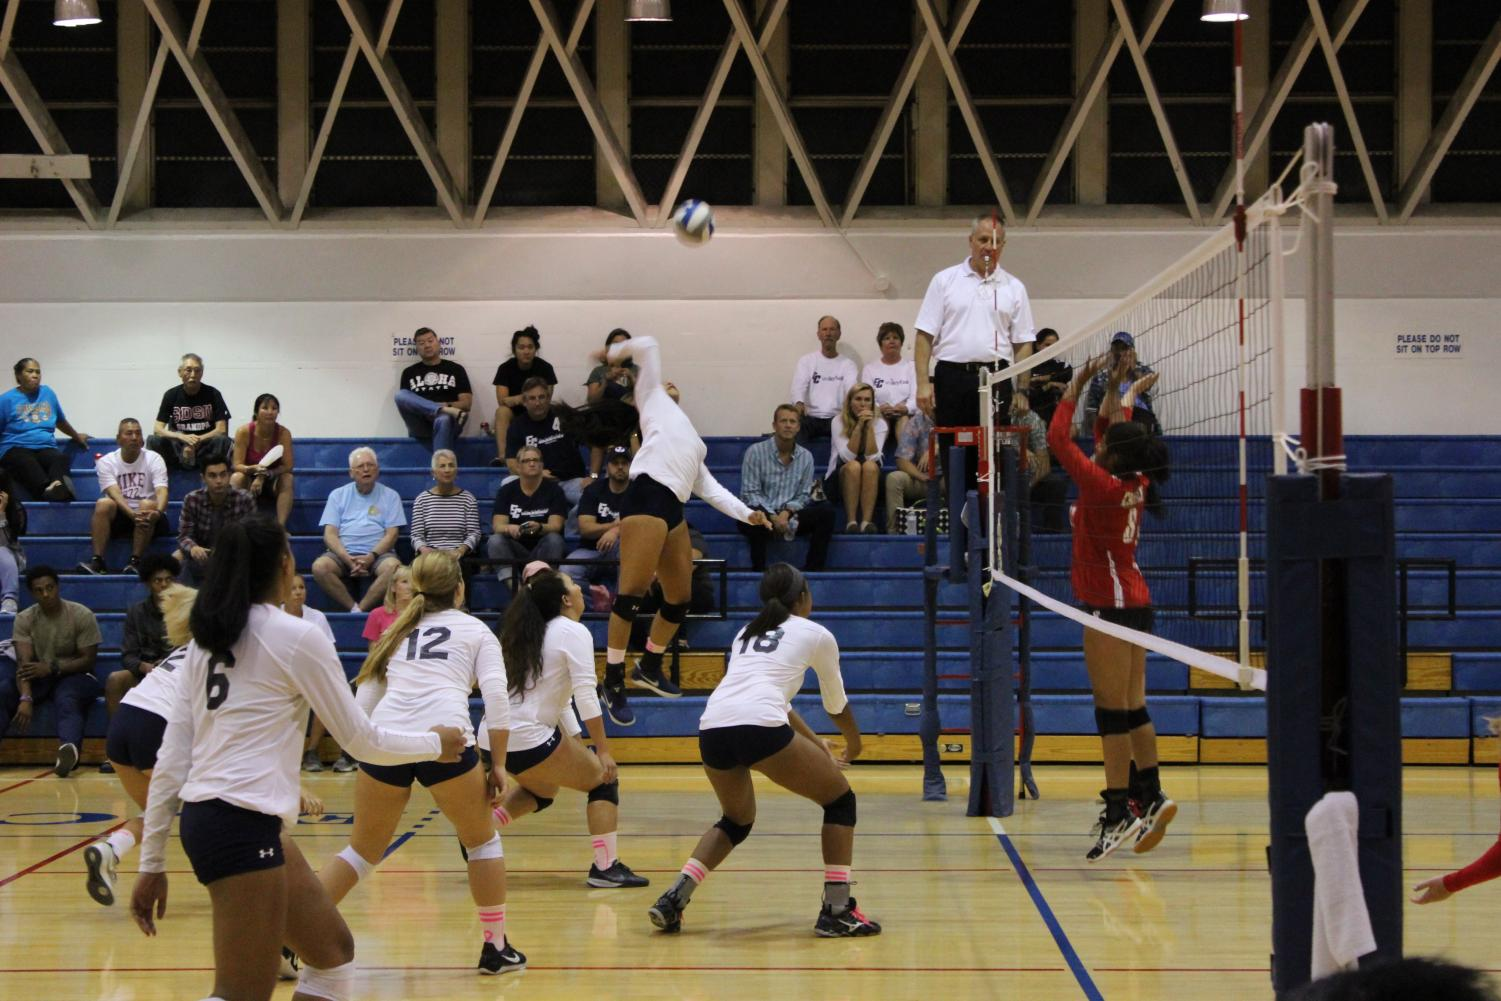 Women's volleyball team pummel Chaffey